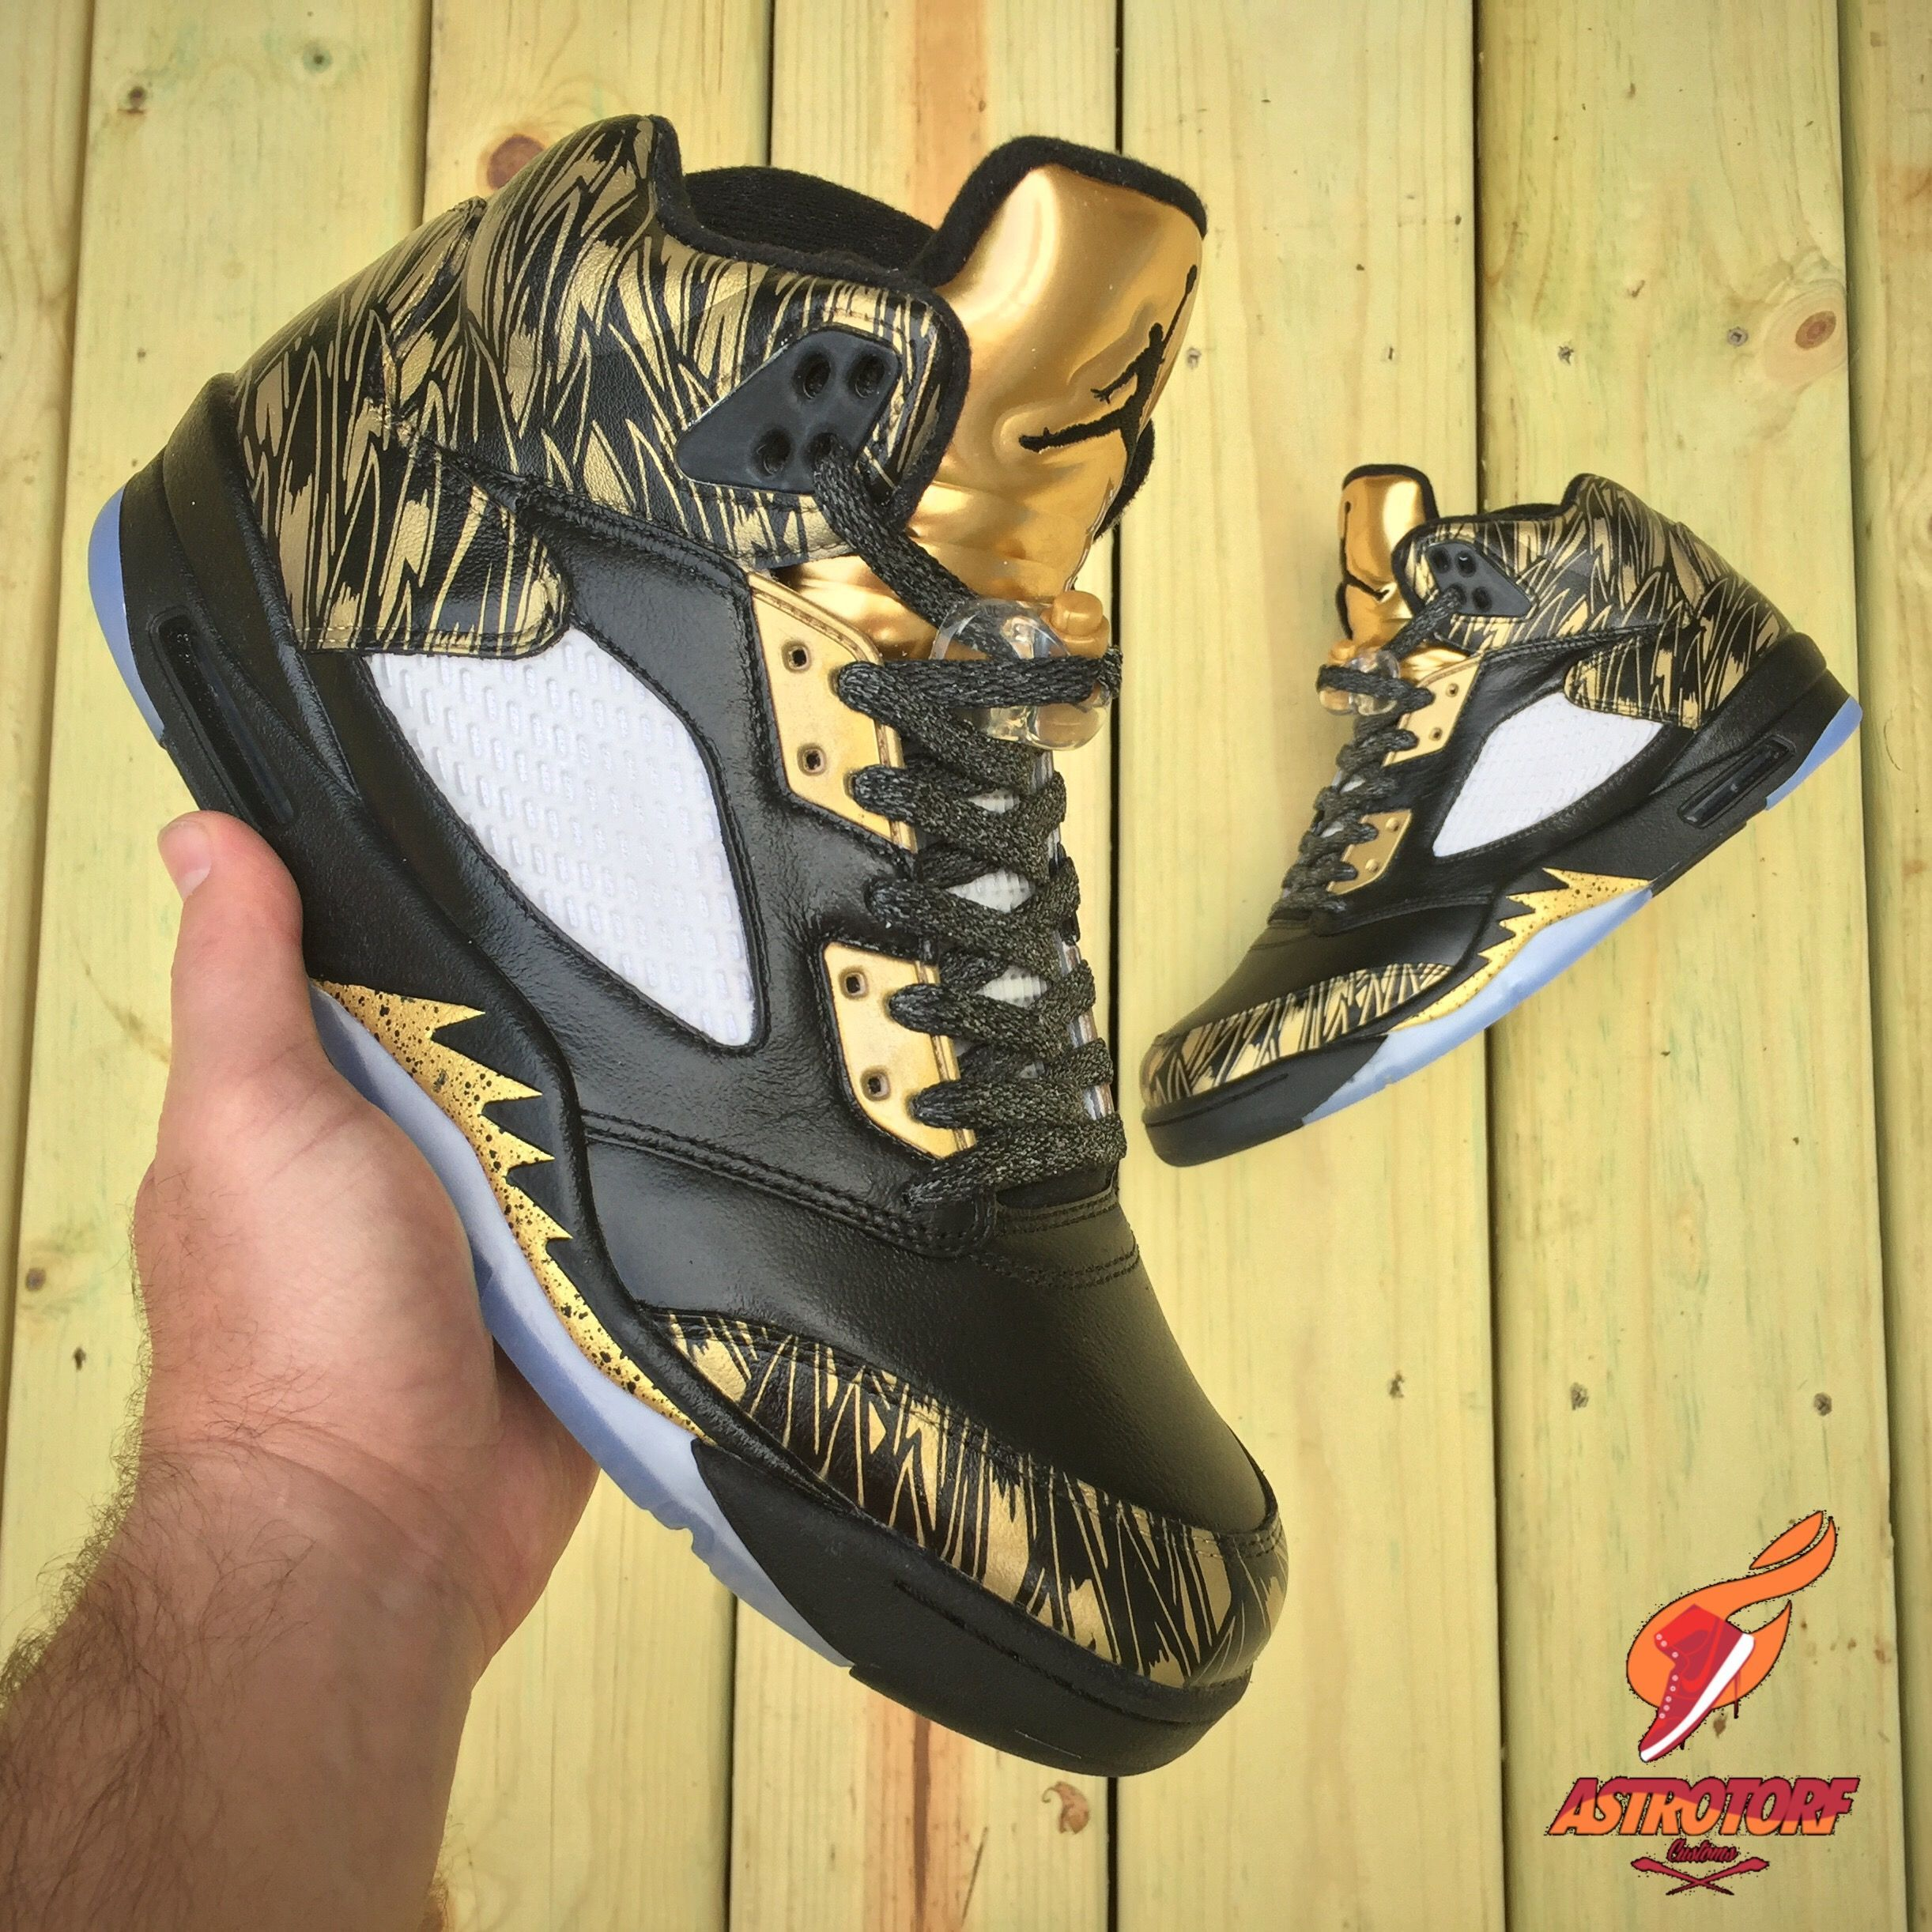 Astrotorf Customs Gives The Air Jordan 5 Olympic Some Golden Wings d7661d6764